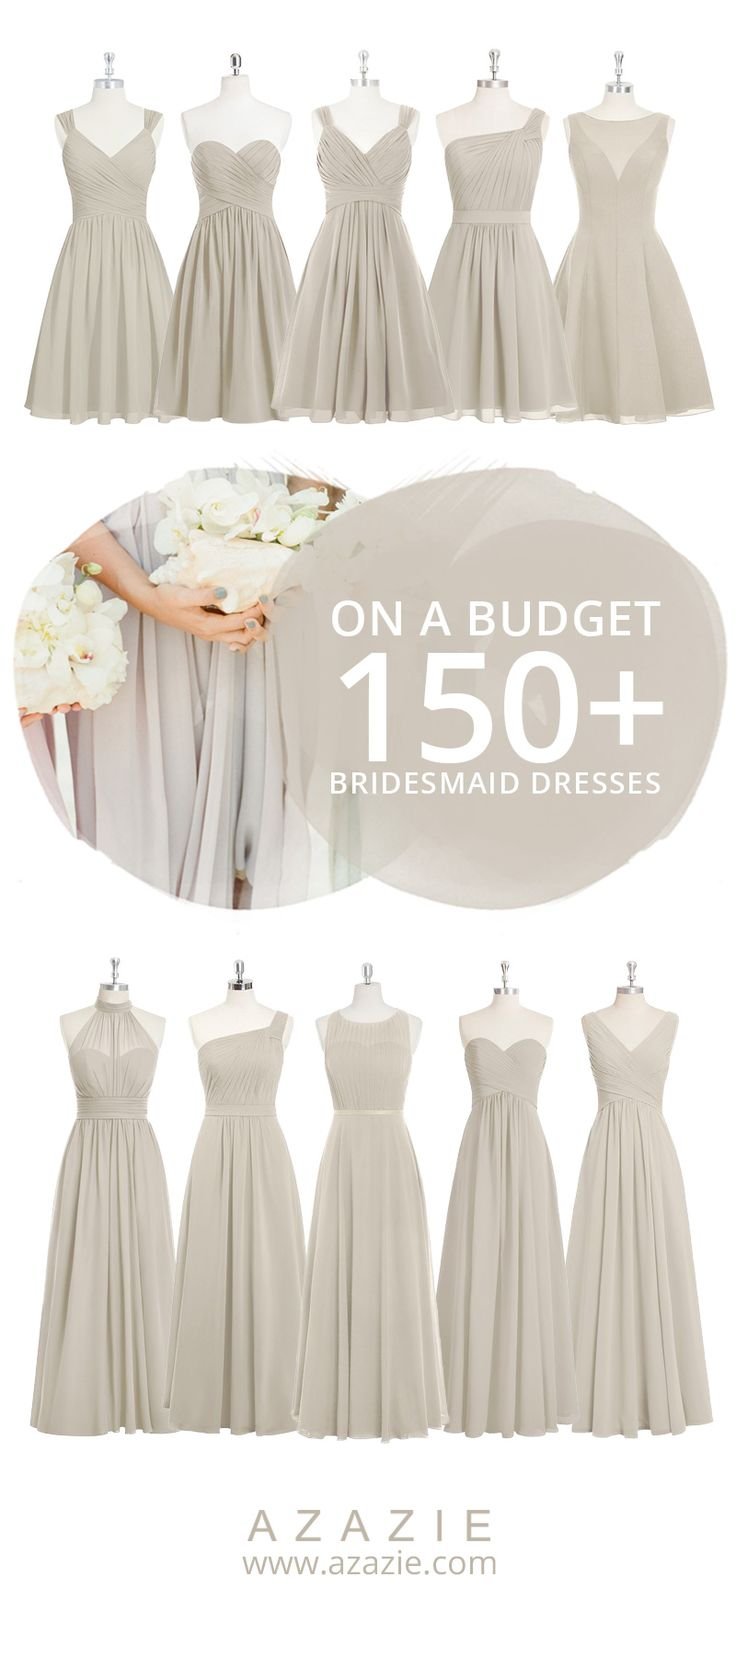 288 best bridesmaid gowns images on pinterest marriage wedding still searching for some fall wedding color inspiration go ahead and dress up your bridesmaids ombrellifo Choice Image